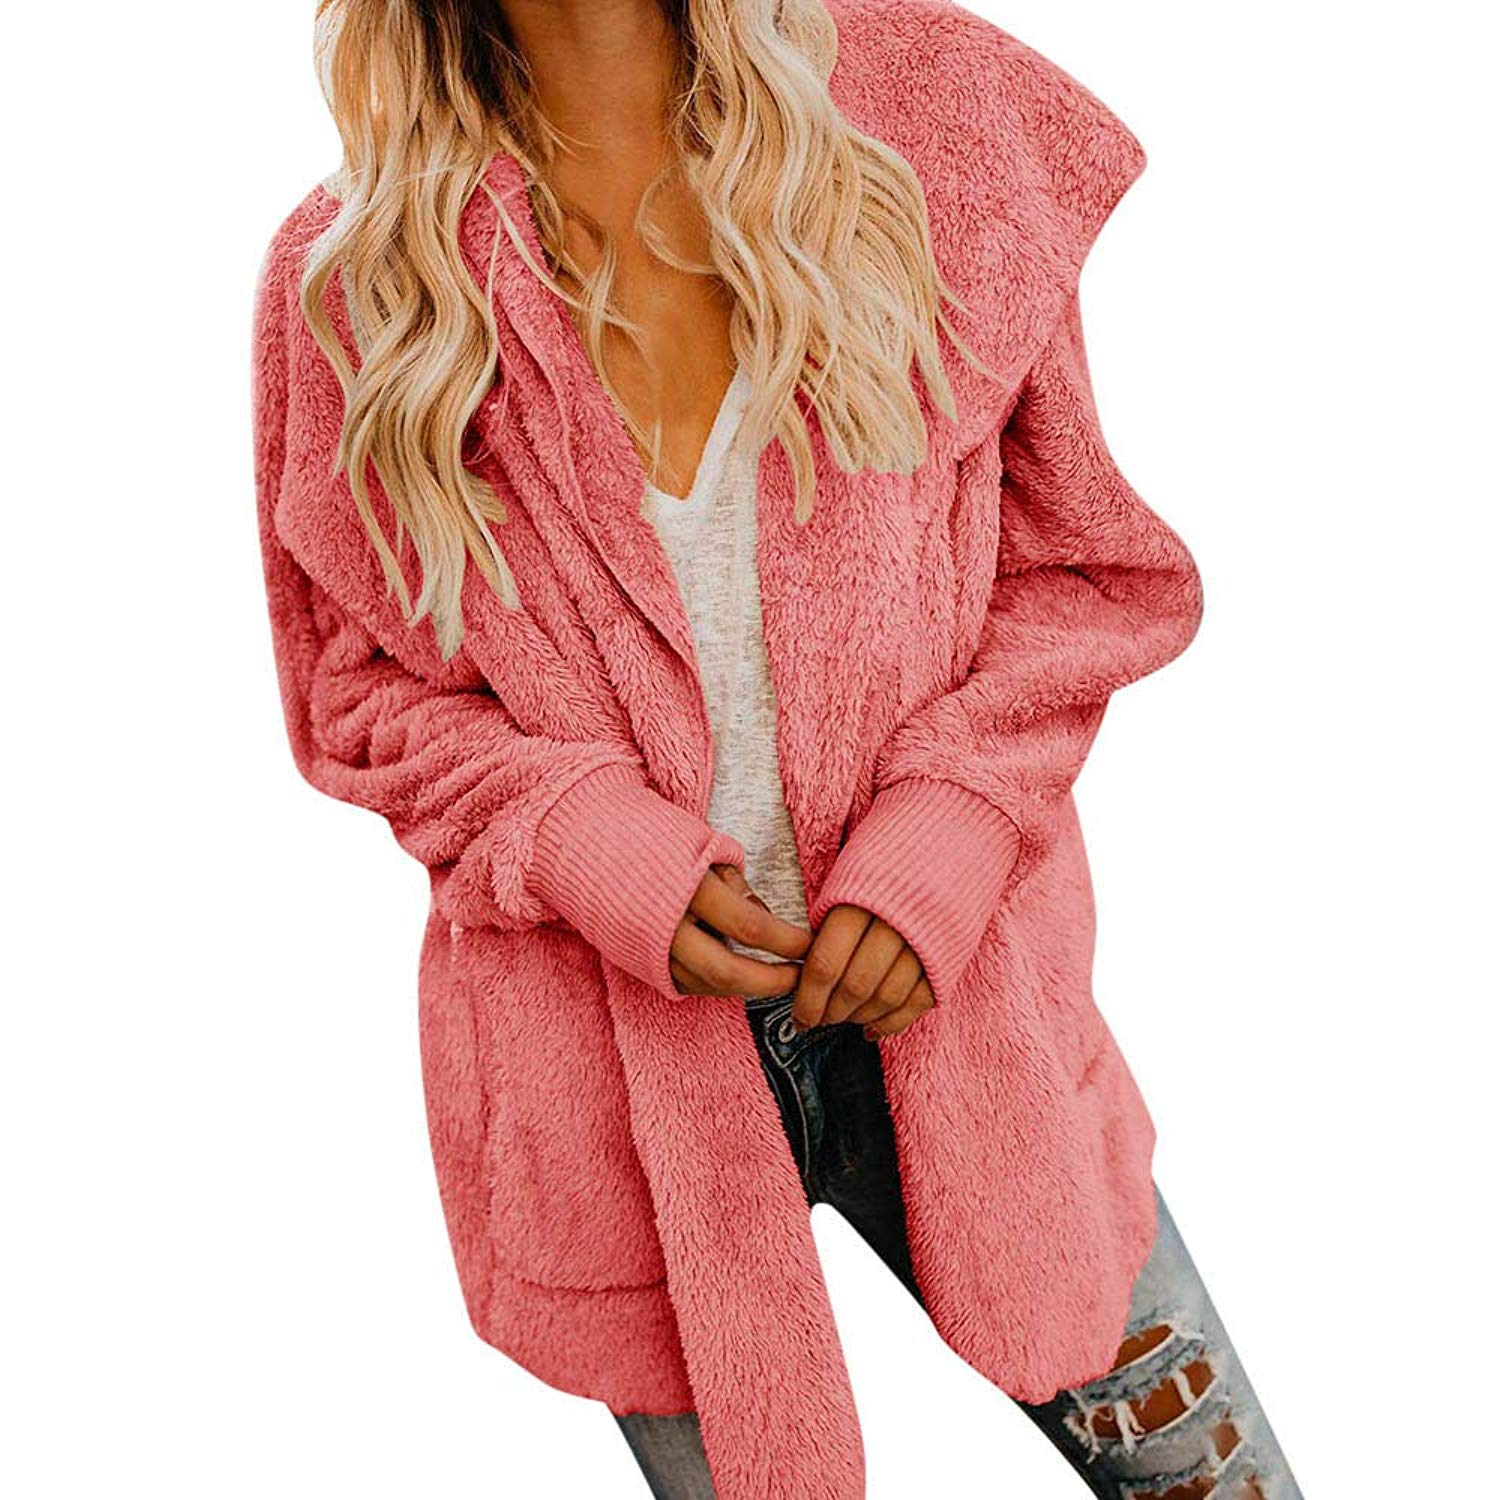 dd59a487150cc Get Quotations · Amiley Womens Open Front Hooded Cardigan Winter Sweatshirt  Jacket Faux Fur Warm Coat Top Outwear with